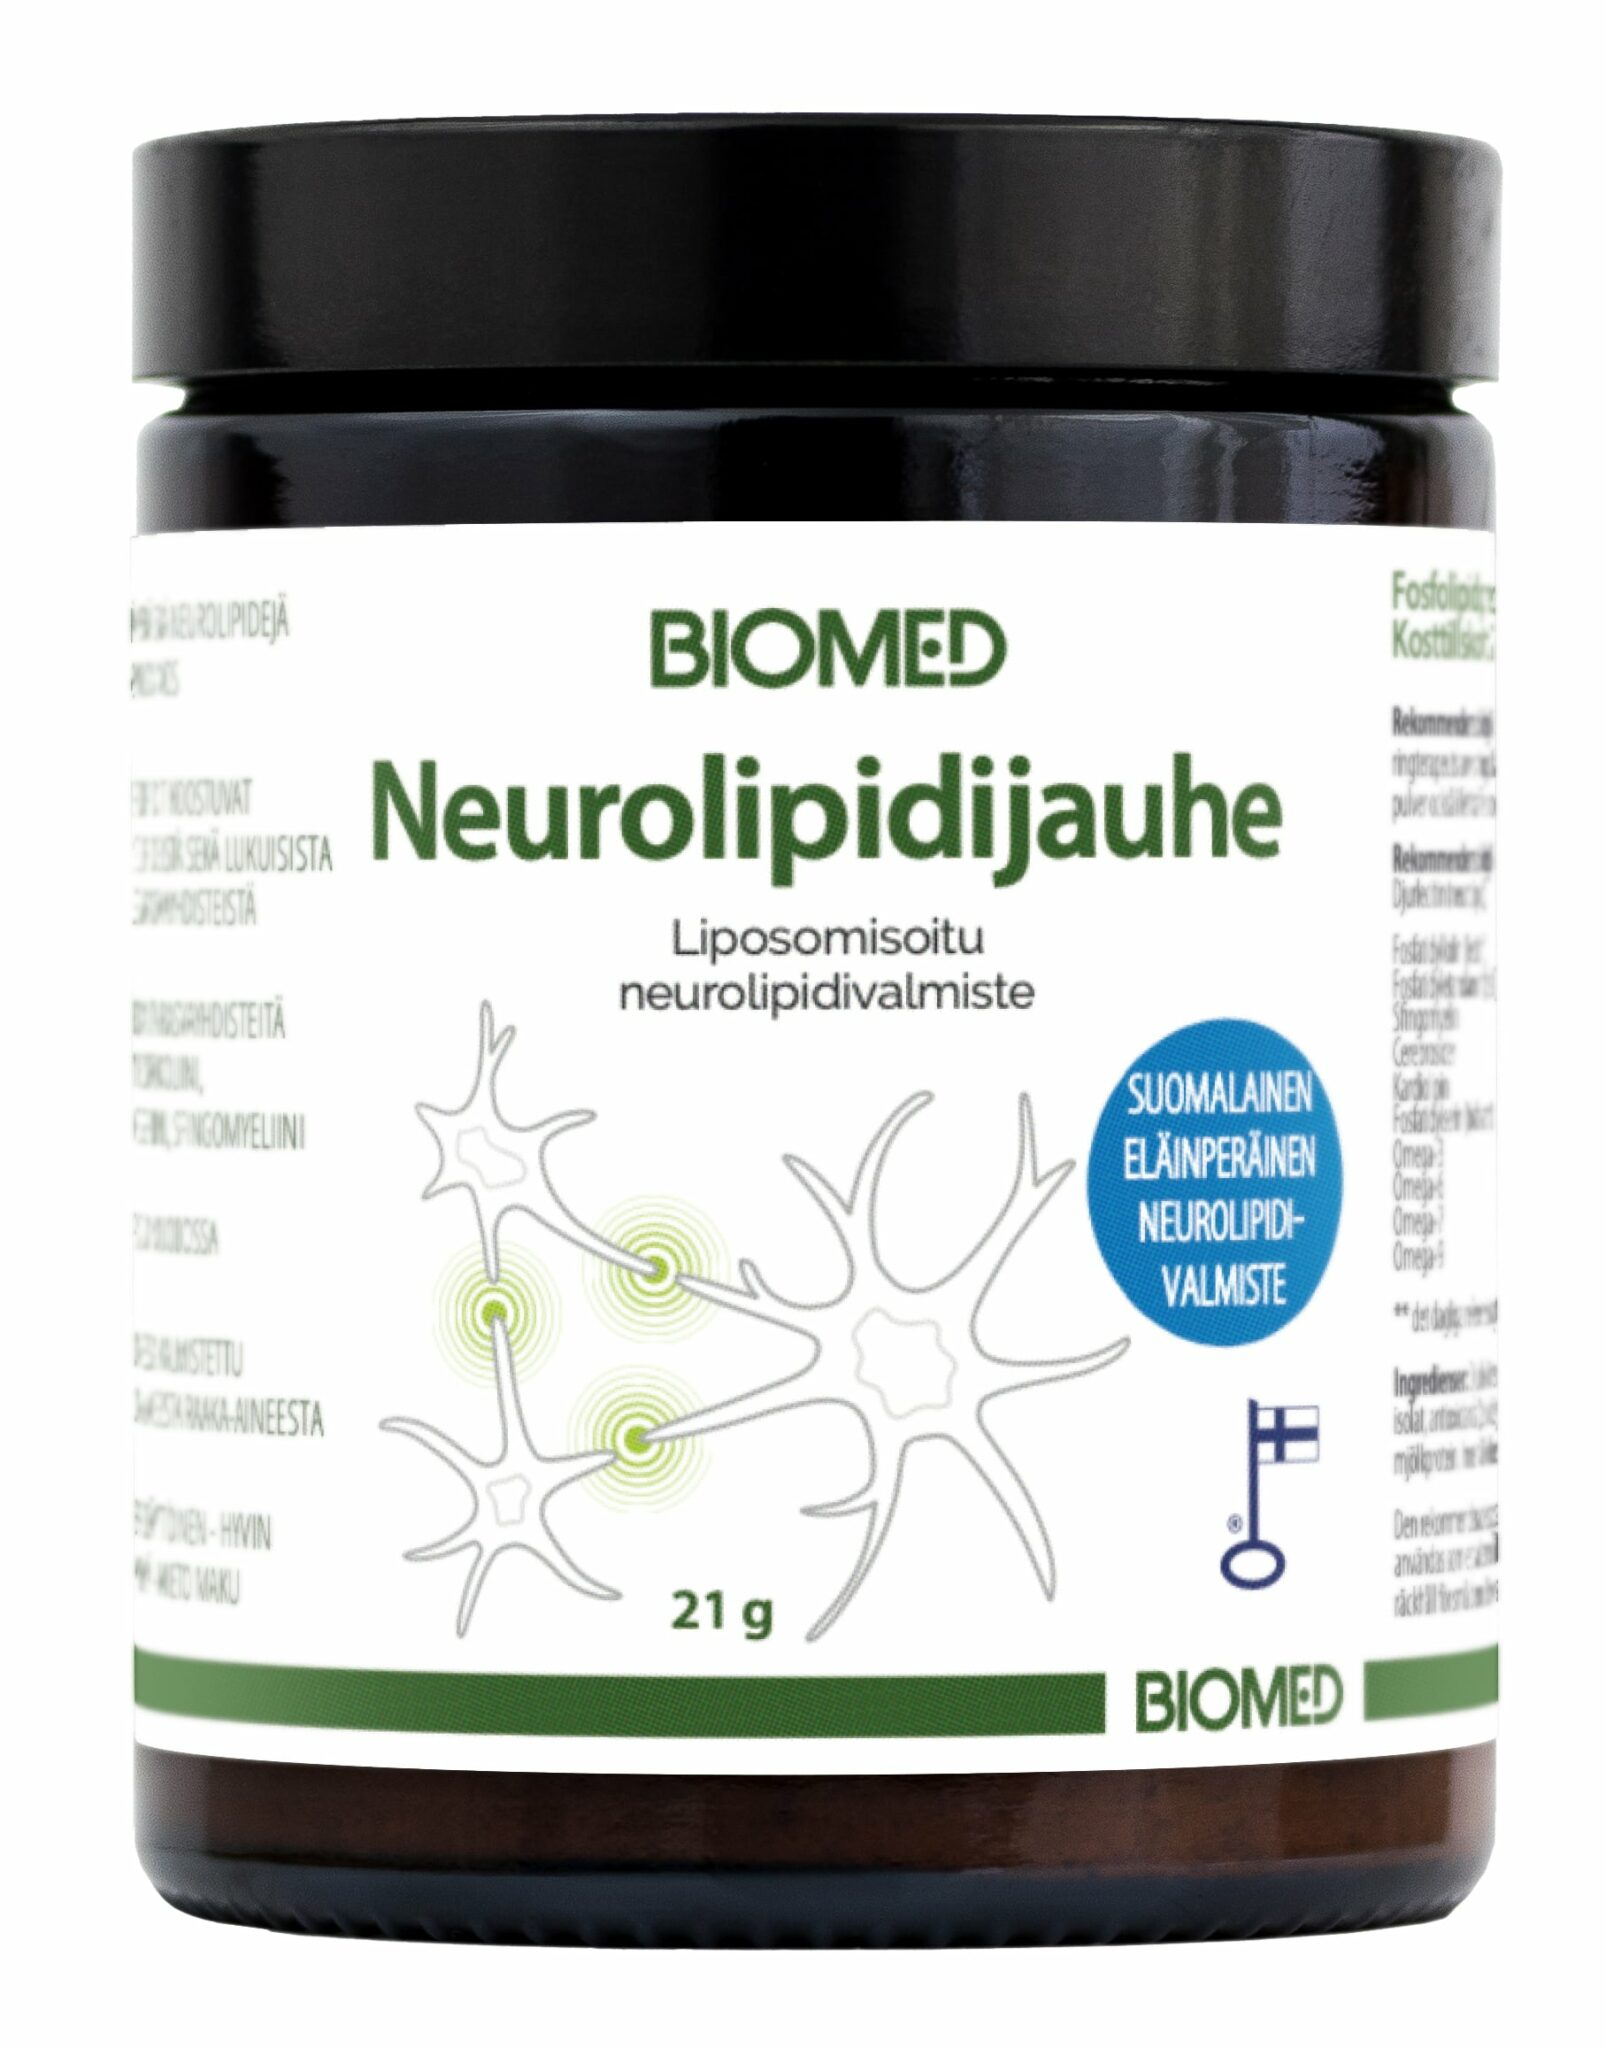 Product development ignited by pioneering with neurolipids